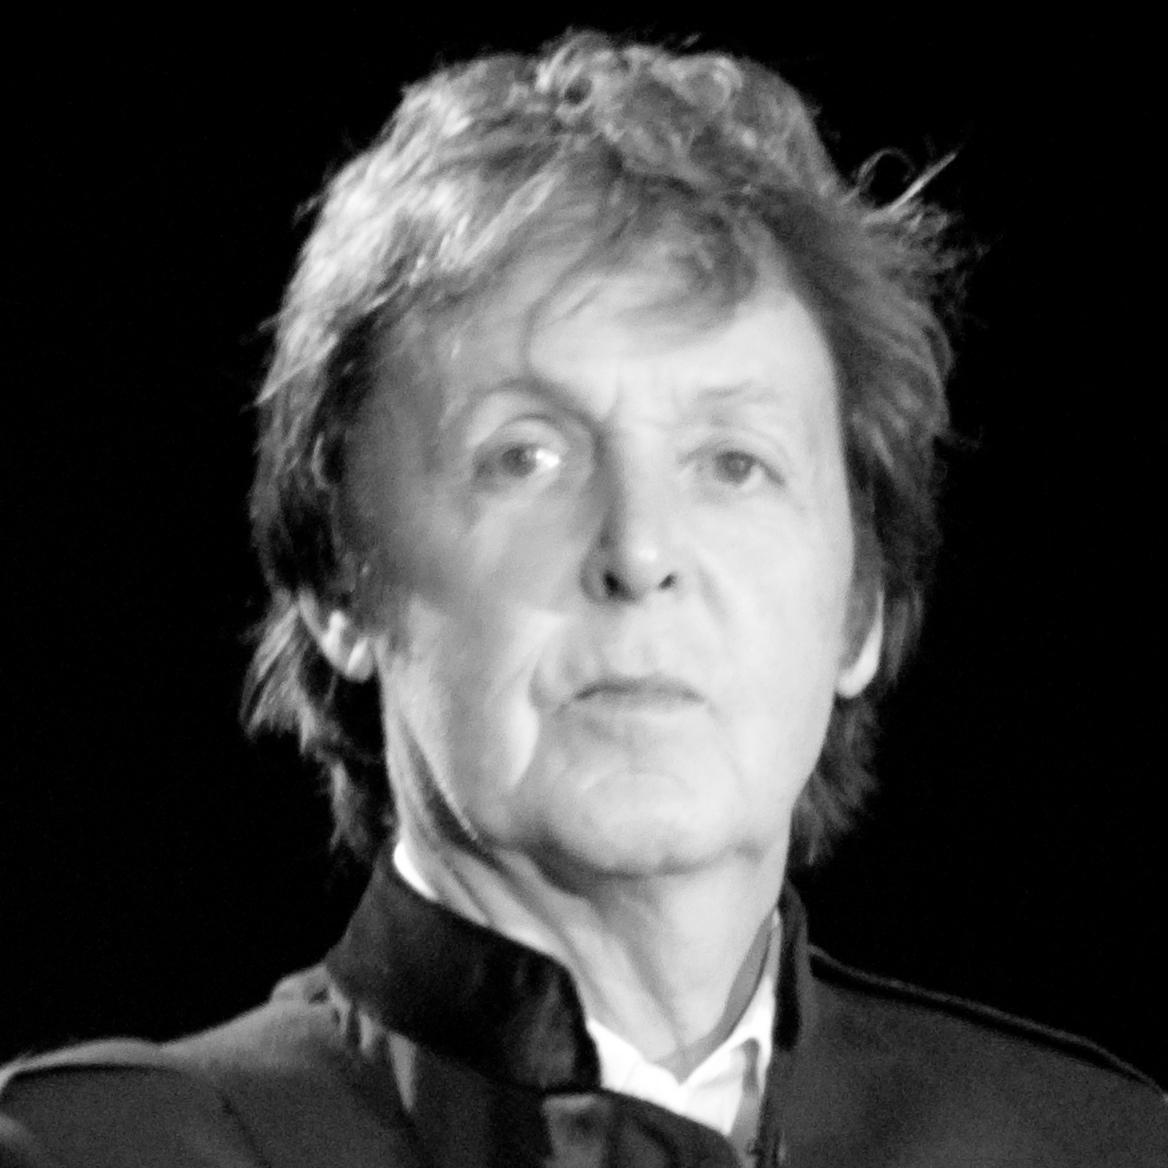 Paul McCartney Bio, Net Worth, Facts